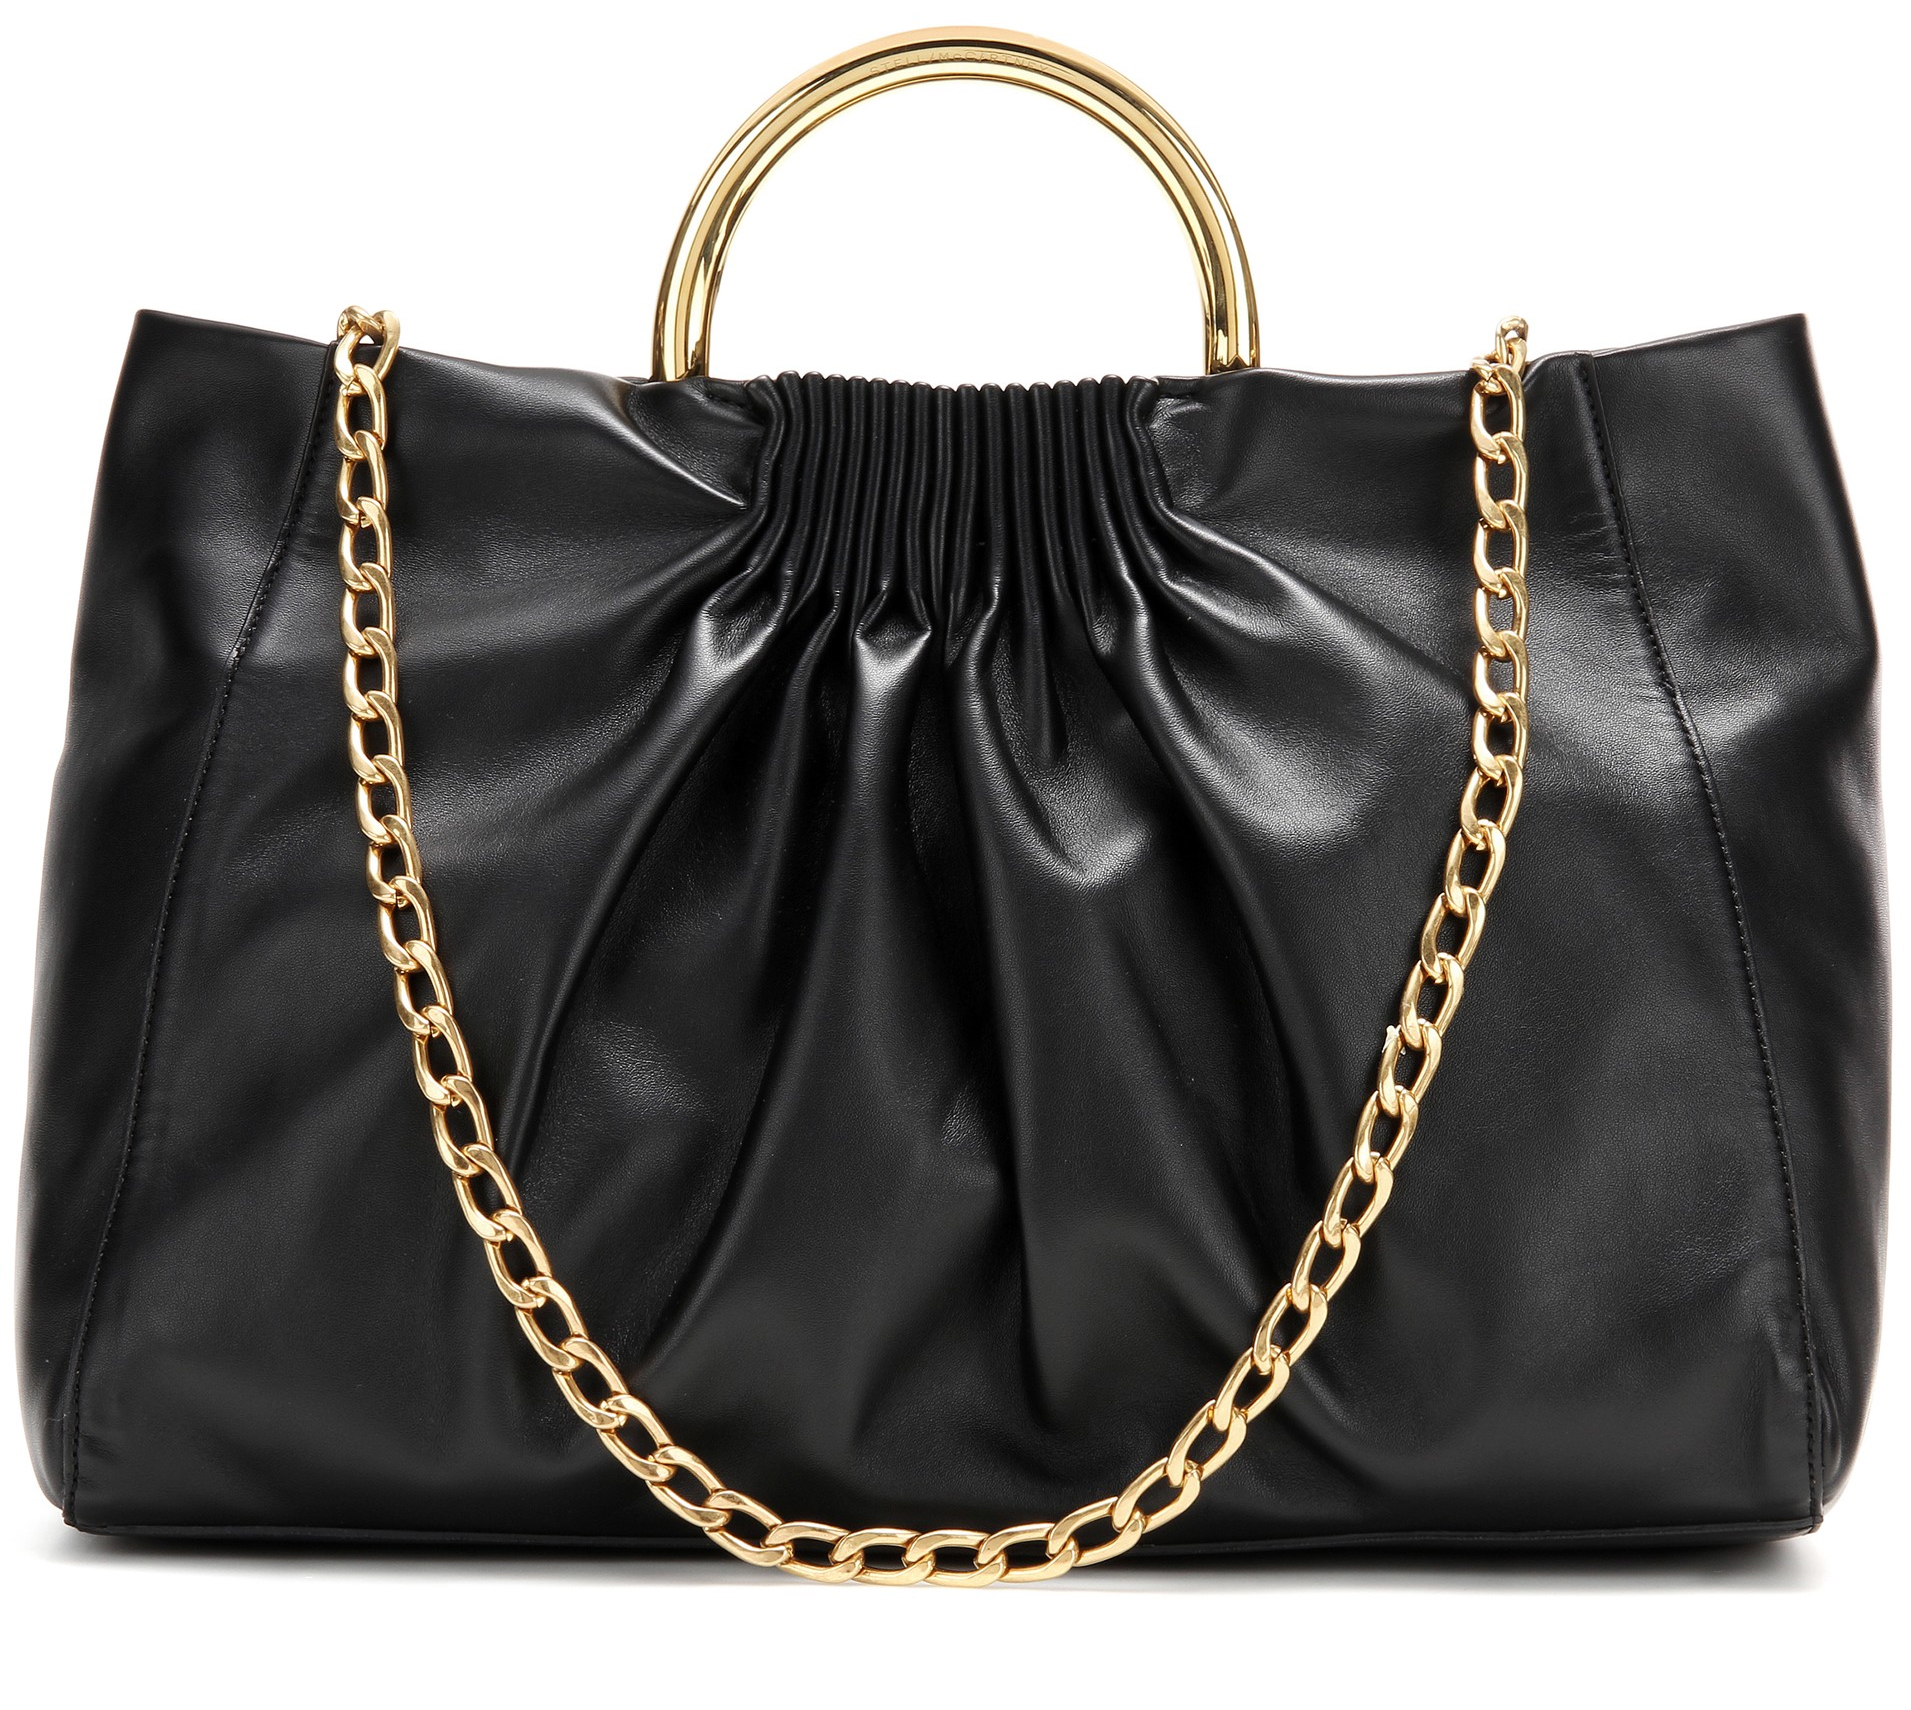 Stella McCartney black Nina Medium faux leather shoulder bag - designer tote bags